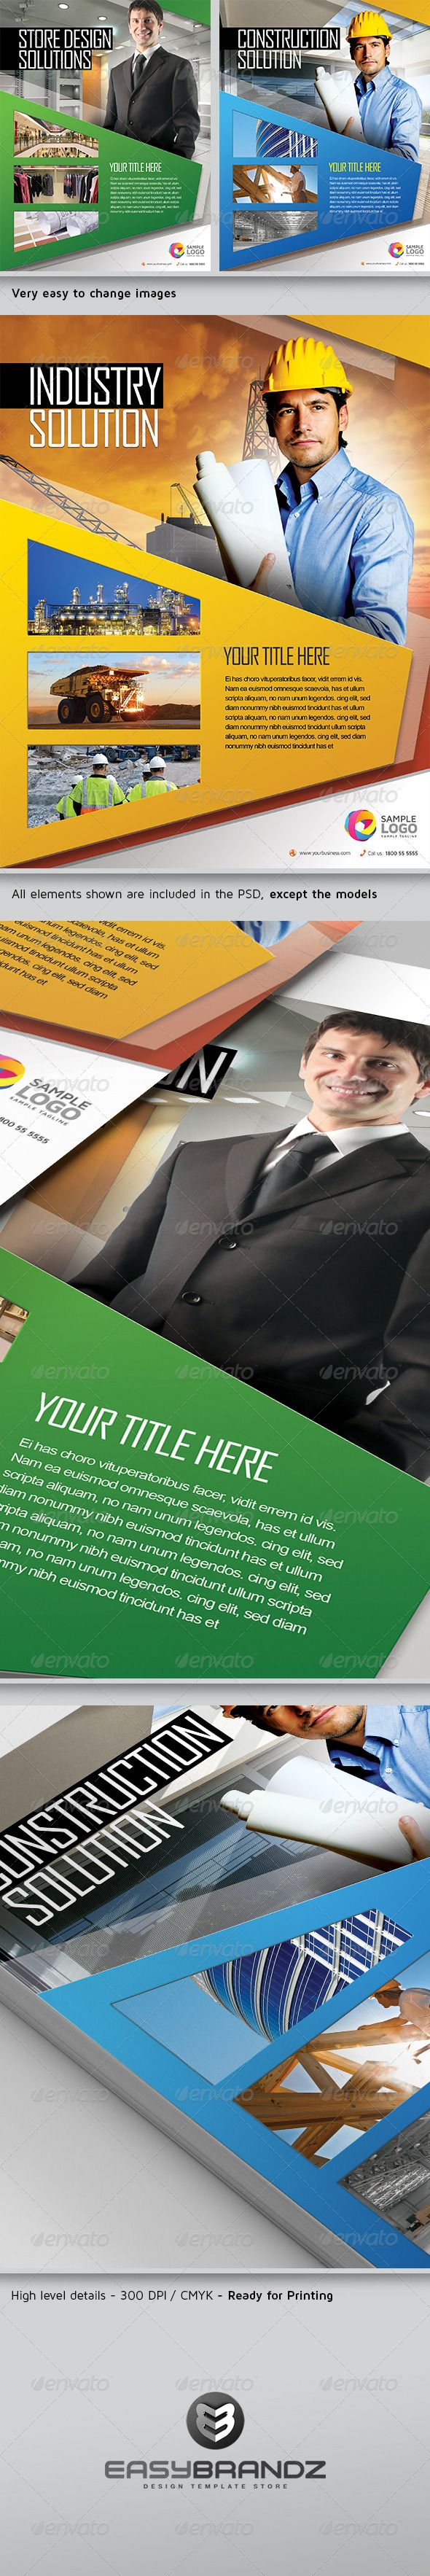 """Multipurpose Business Flyer / AD Template Vol.02   #GraphicRiver         This template is perfect for any company that needs a modern corporate style flyer or magazine ads template. Easy to modify, like changing colors, dimensions, etc. All text are editable. You can too hide and show some layers and obtain unique results!   Features:   1 Print ready Photoshop file (11×8.5 inches with .25"""" bleeds)  Each layer has its own name for your convenience. The template is much easier to edit.  All…"""